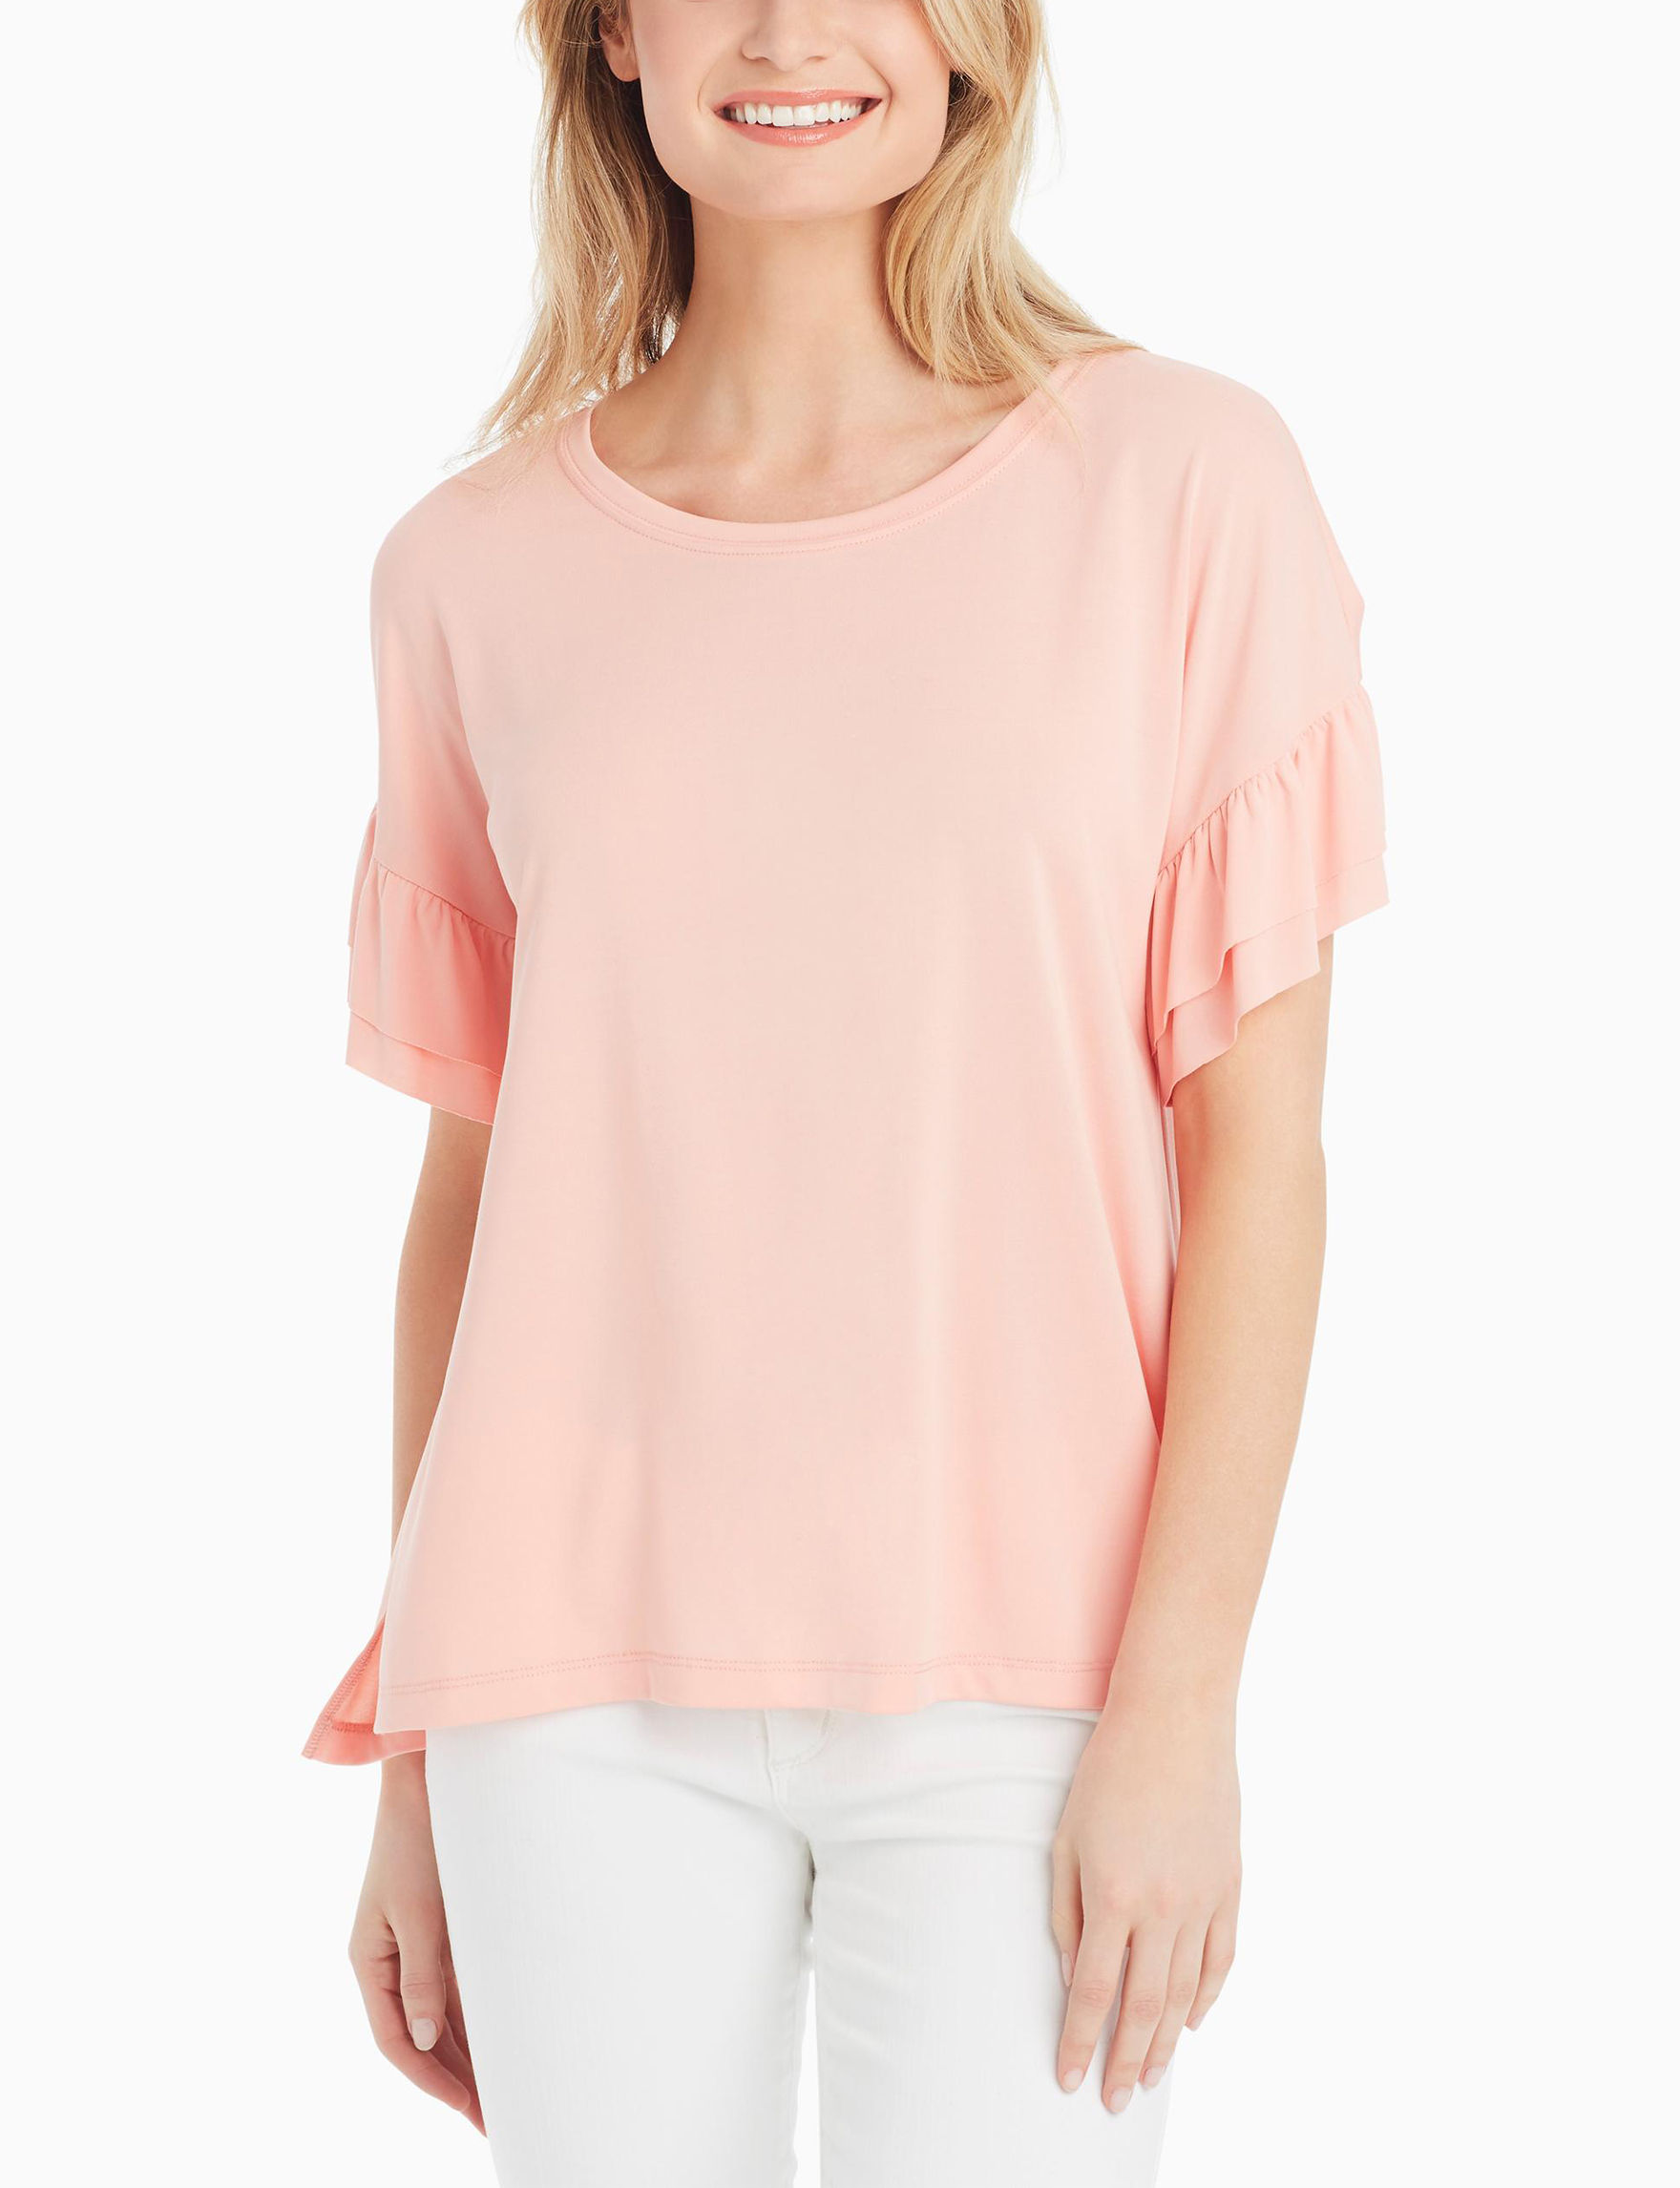 Jessica Simpson Pink Shirts & Blouses